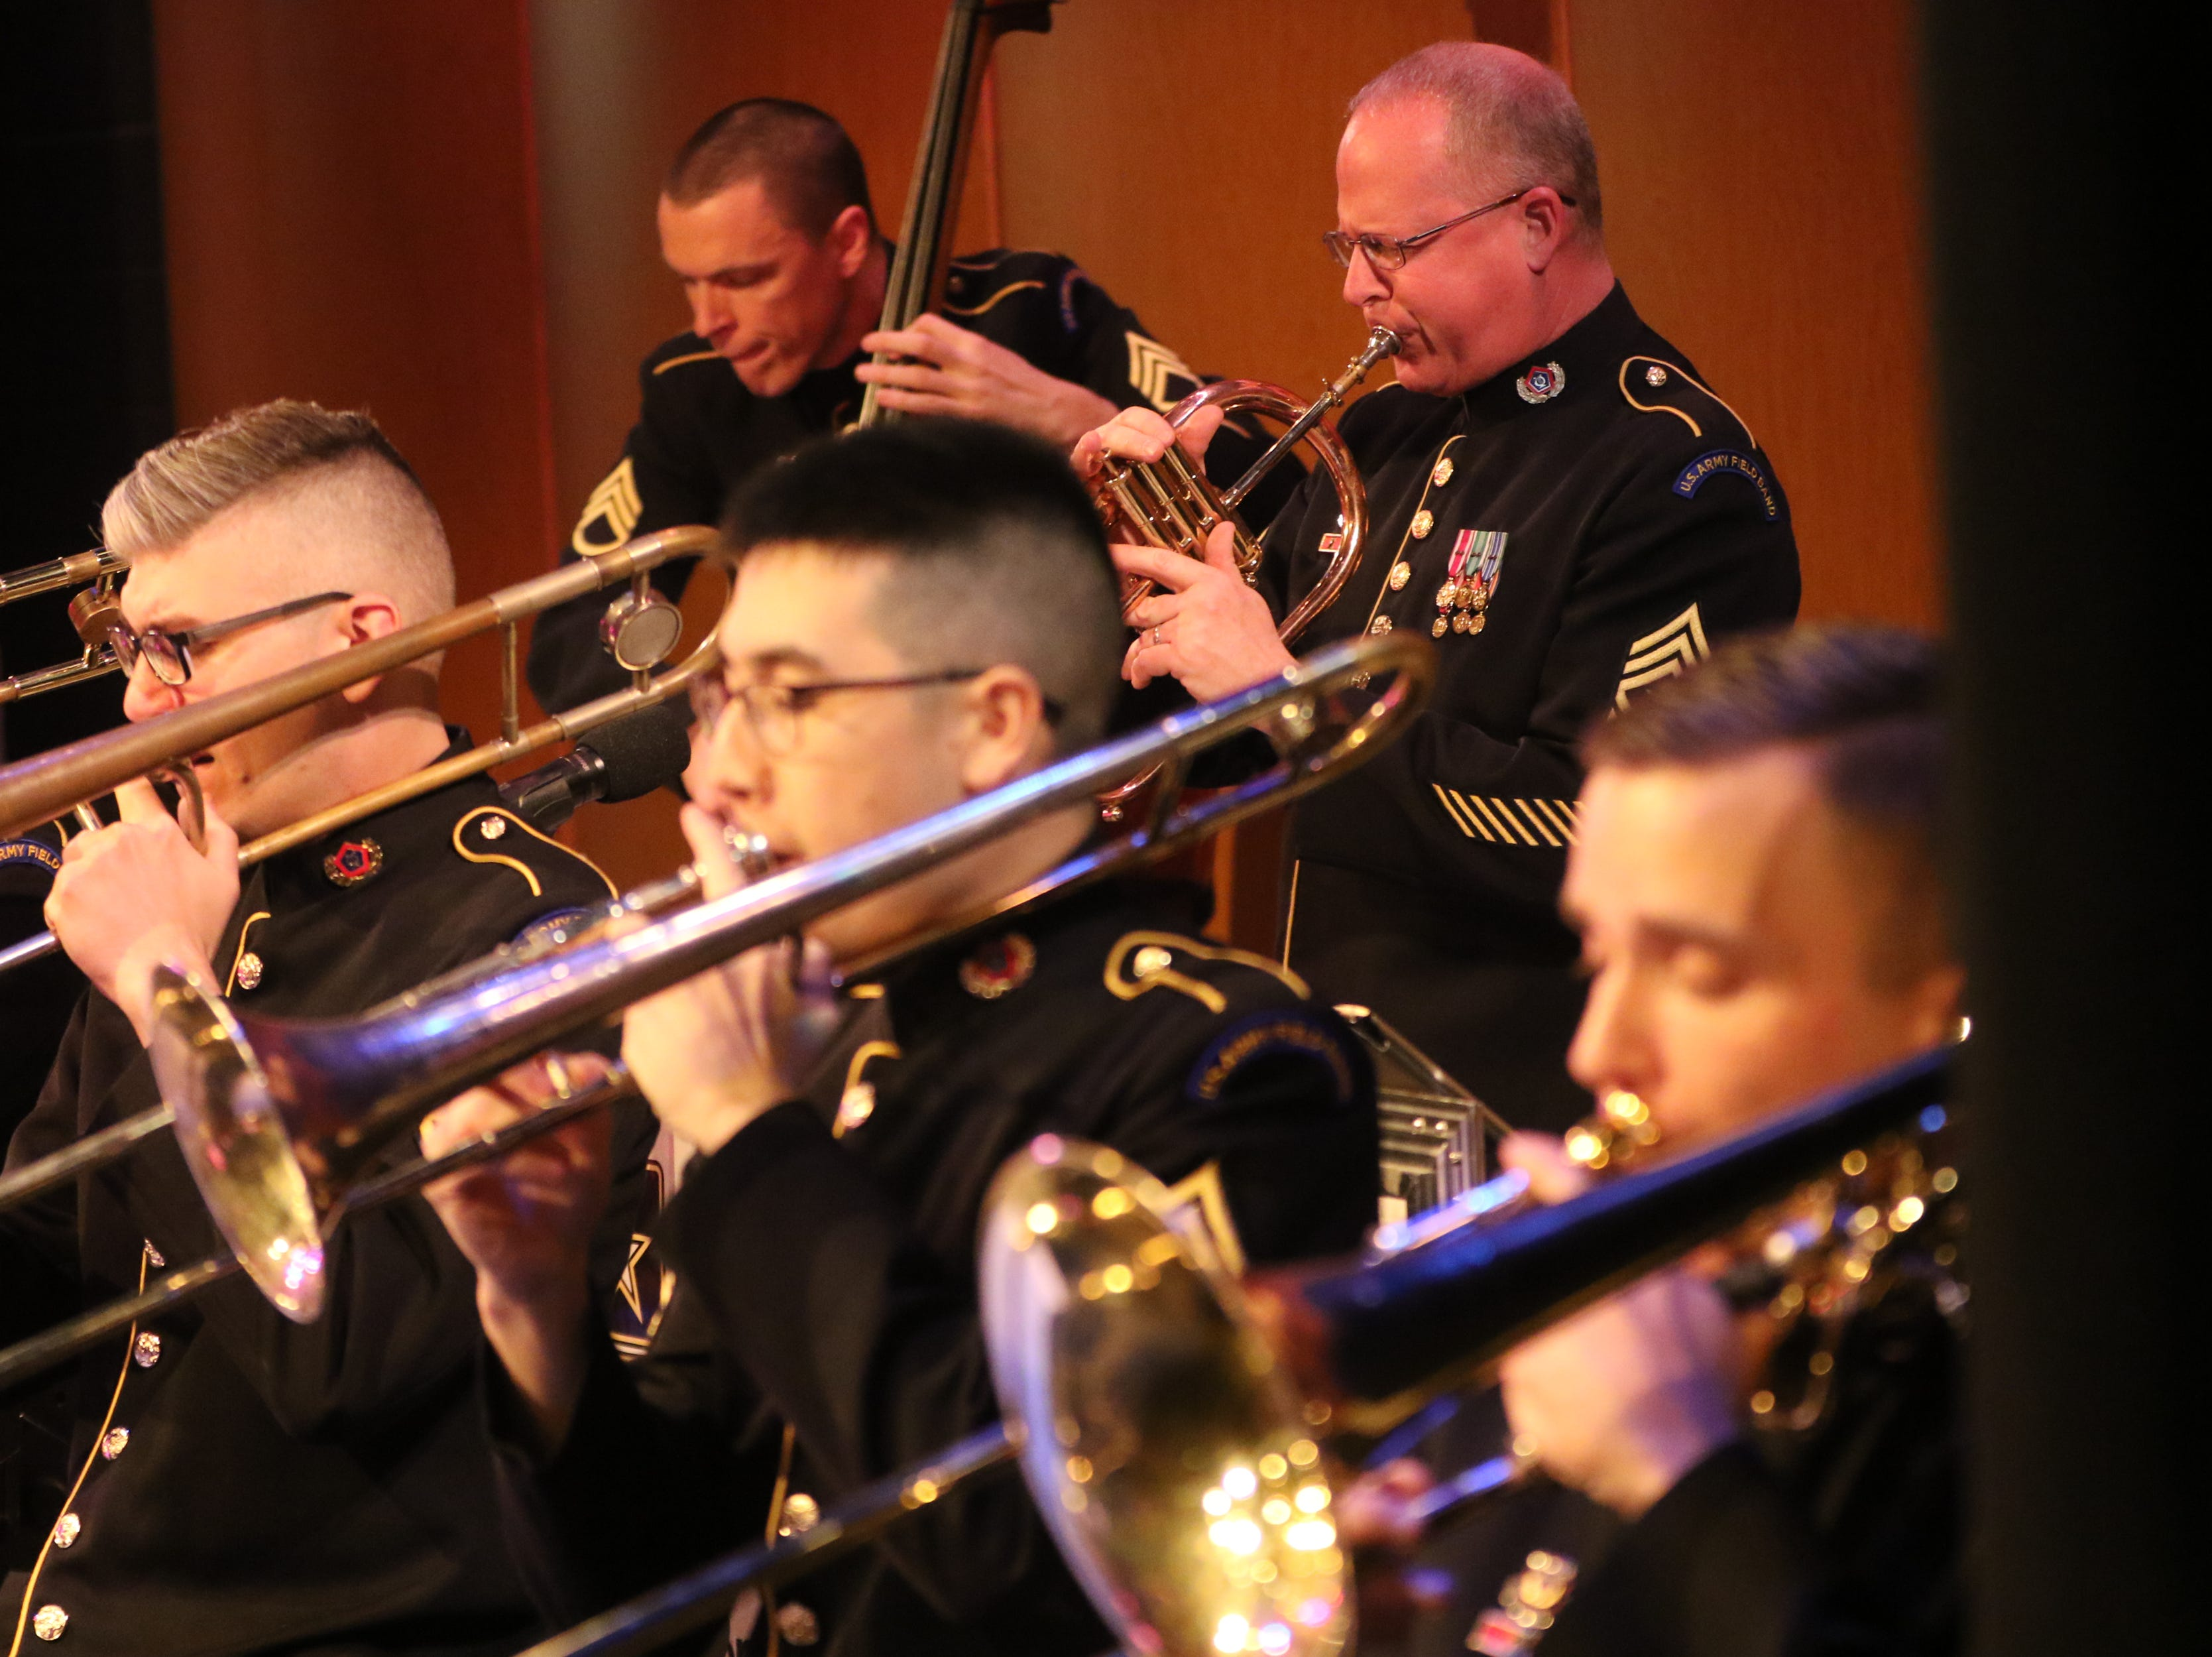 The United States Army Jazz Ambassadors Field Band performed at Wayne Hills High School, Thursday, March 21, 2019.  This was the eleventh day of their tour, which lasts more than a month.